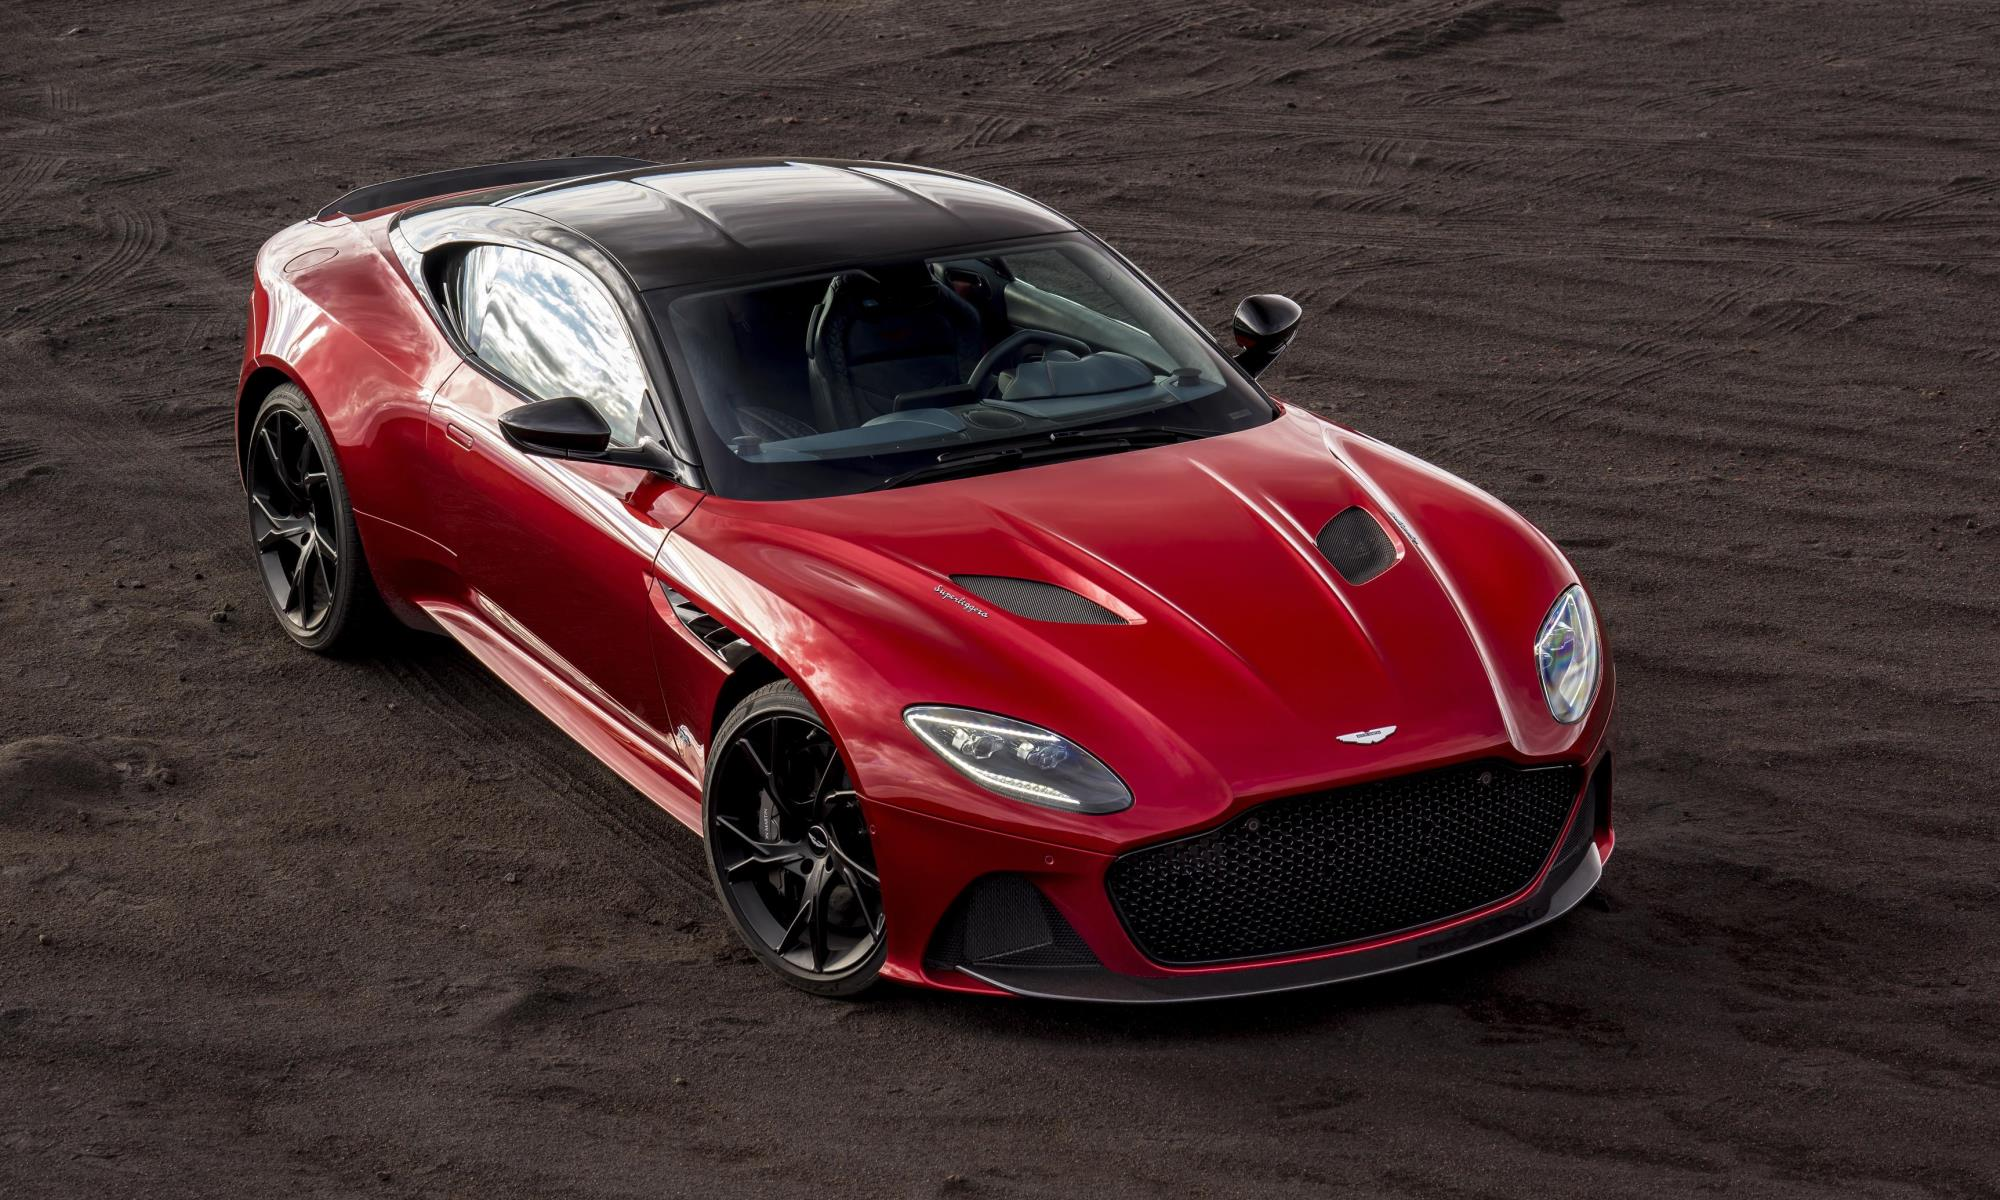 Aston Martin DBS Superleggera top